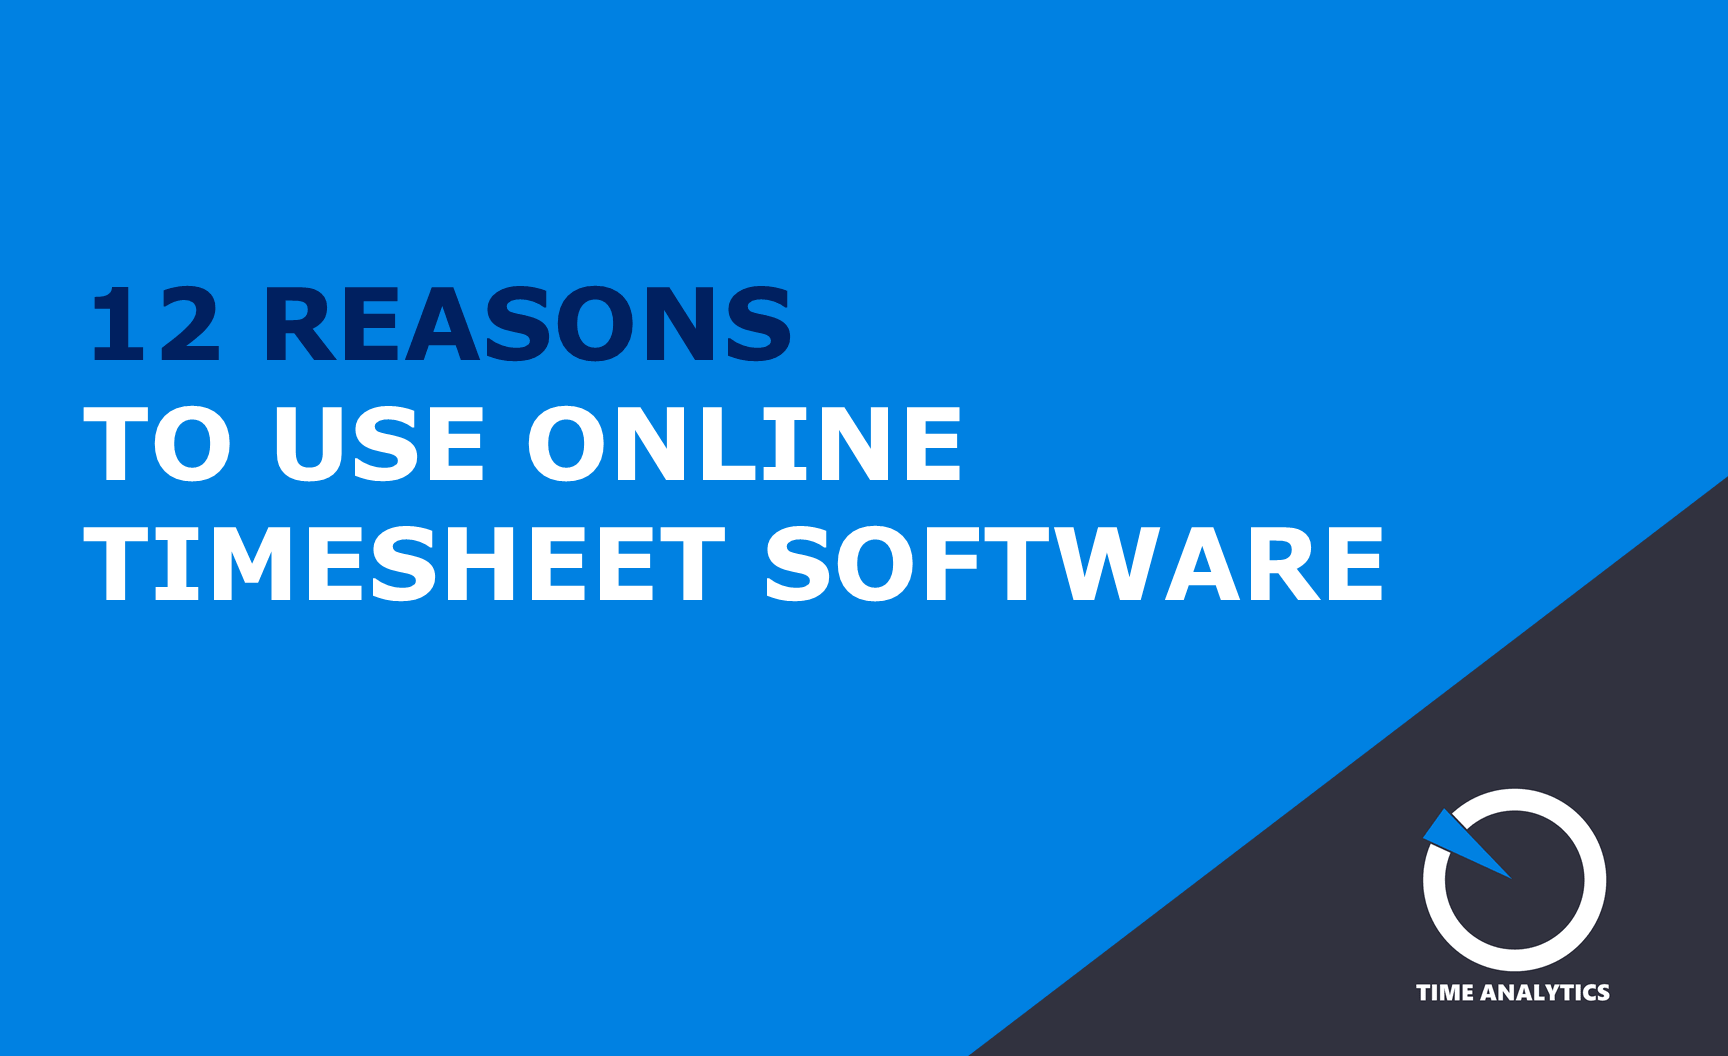 12 reasons to use online timesheet software